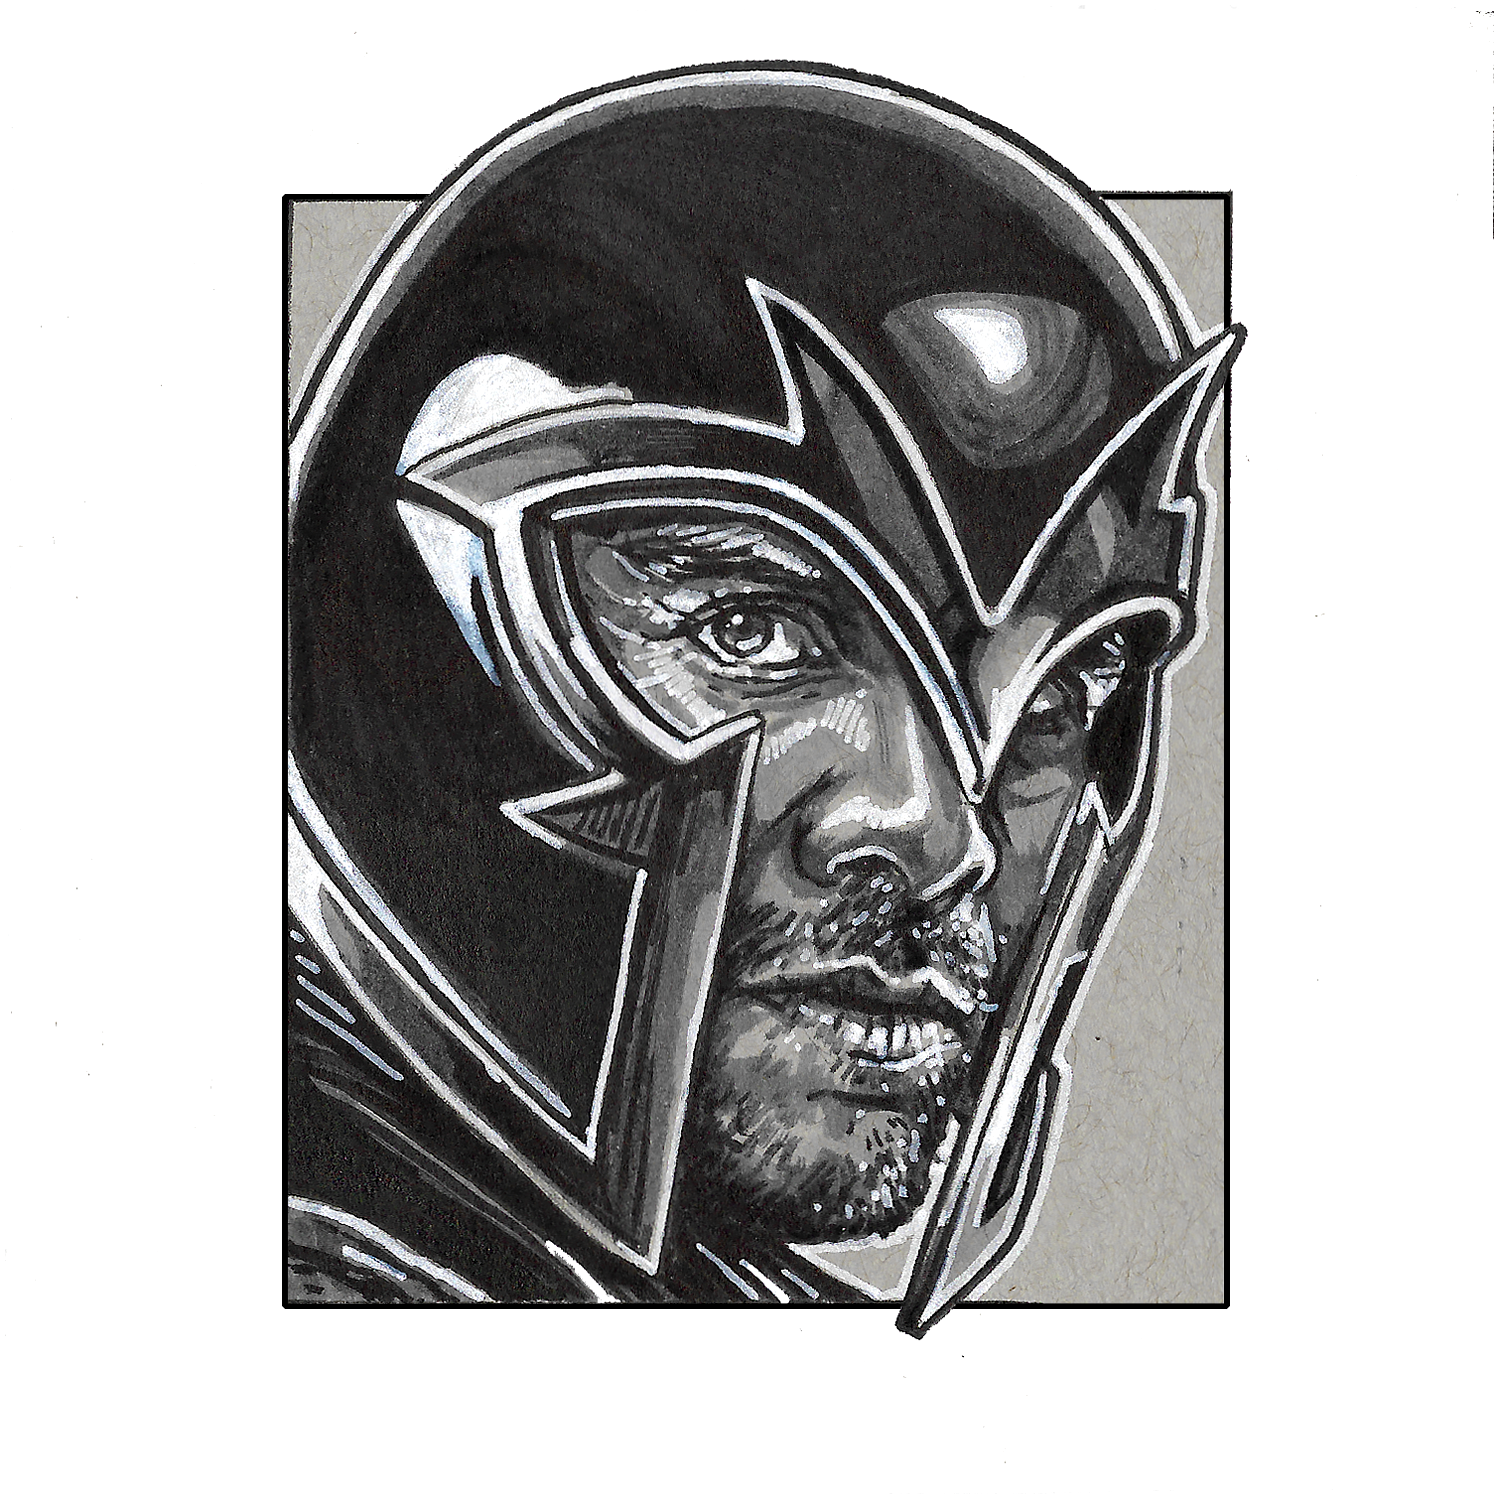 Magneto – Square Print by Robert Bruno